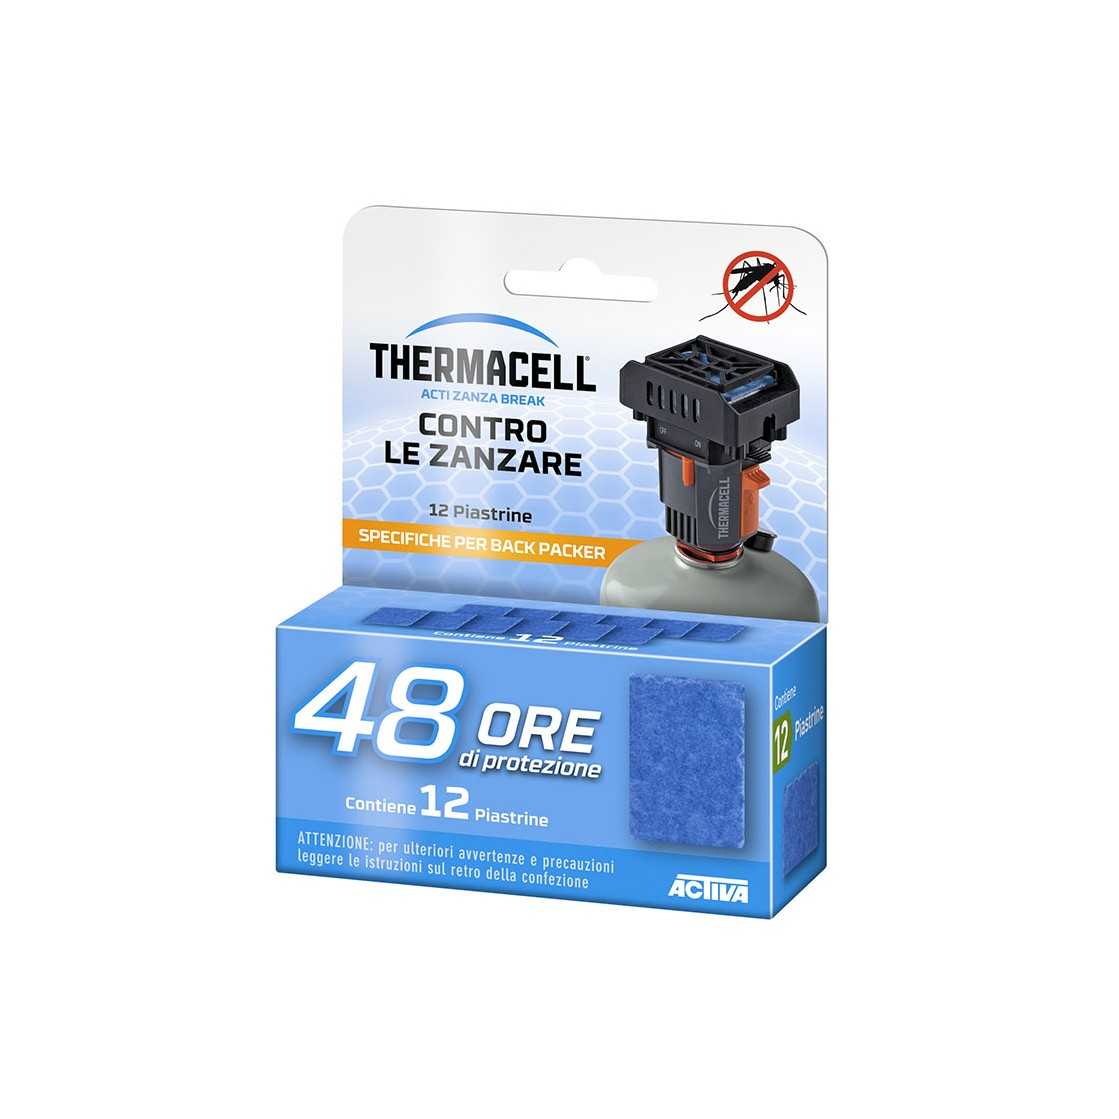 ThermaCELL Ricarica 48 Ore Piastrine Backpacker